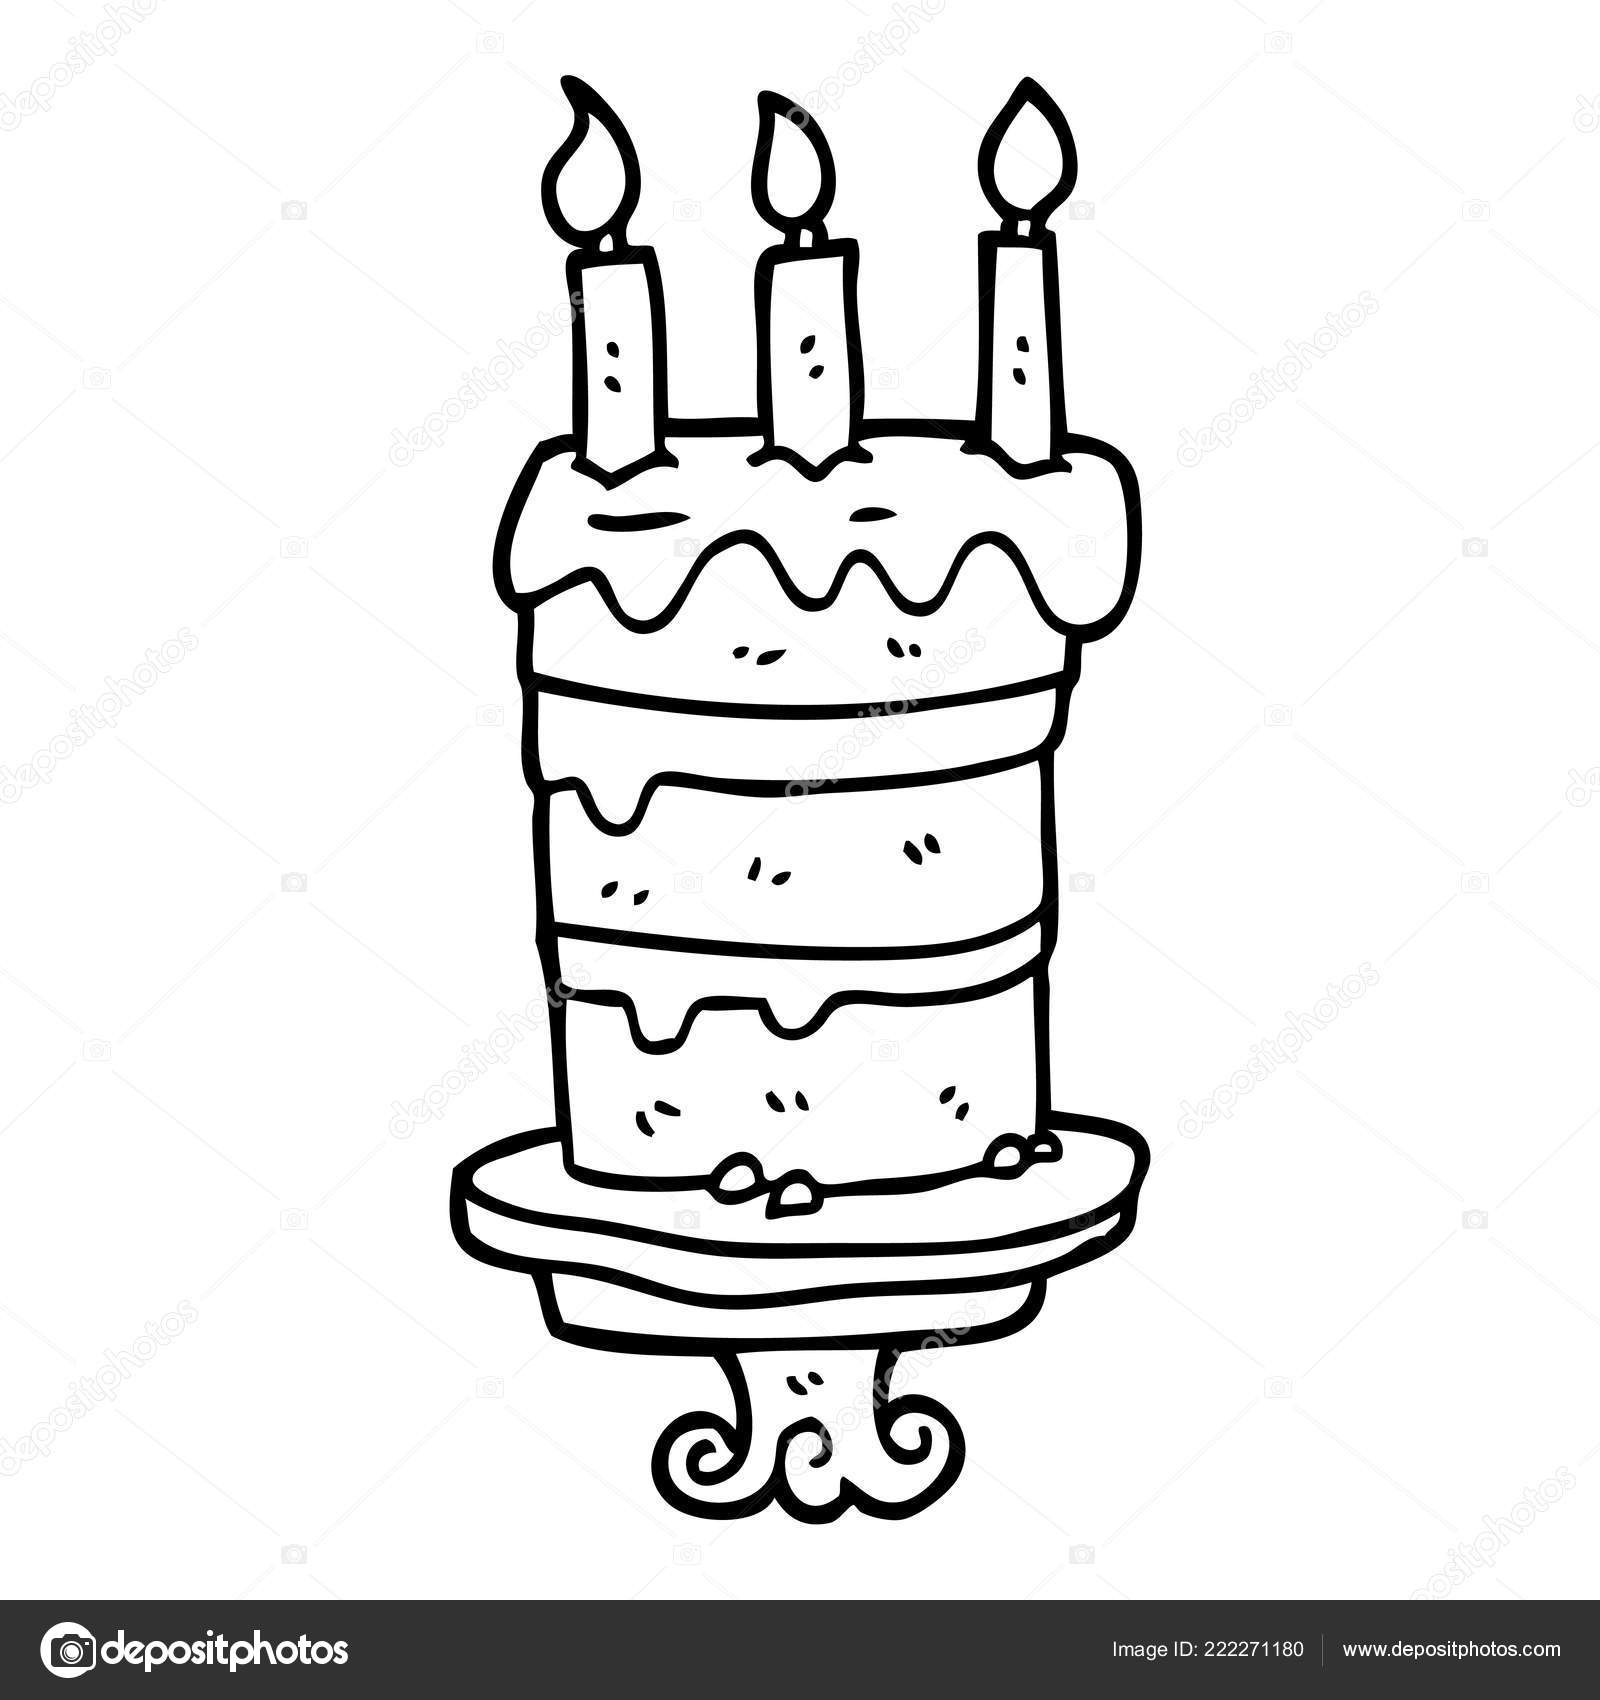 Swell Drawing Of A Cake Line Drawing Cartoon Birthday Cake Stock Funny Birthday Cards Online Alyptdamsfinfo